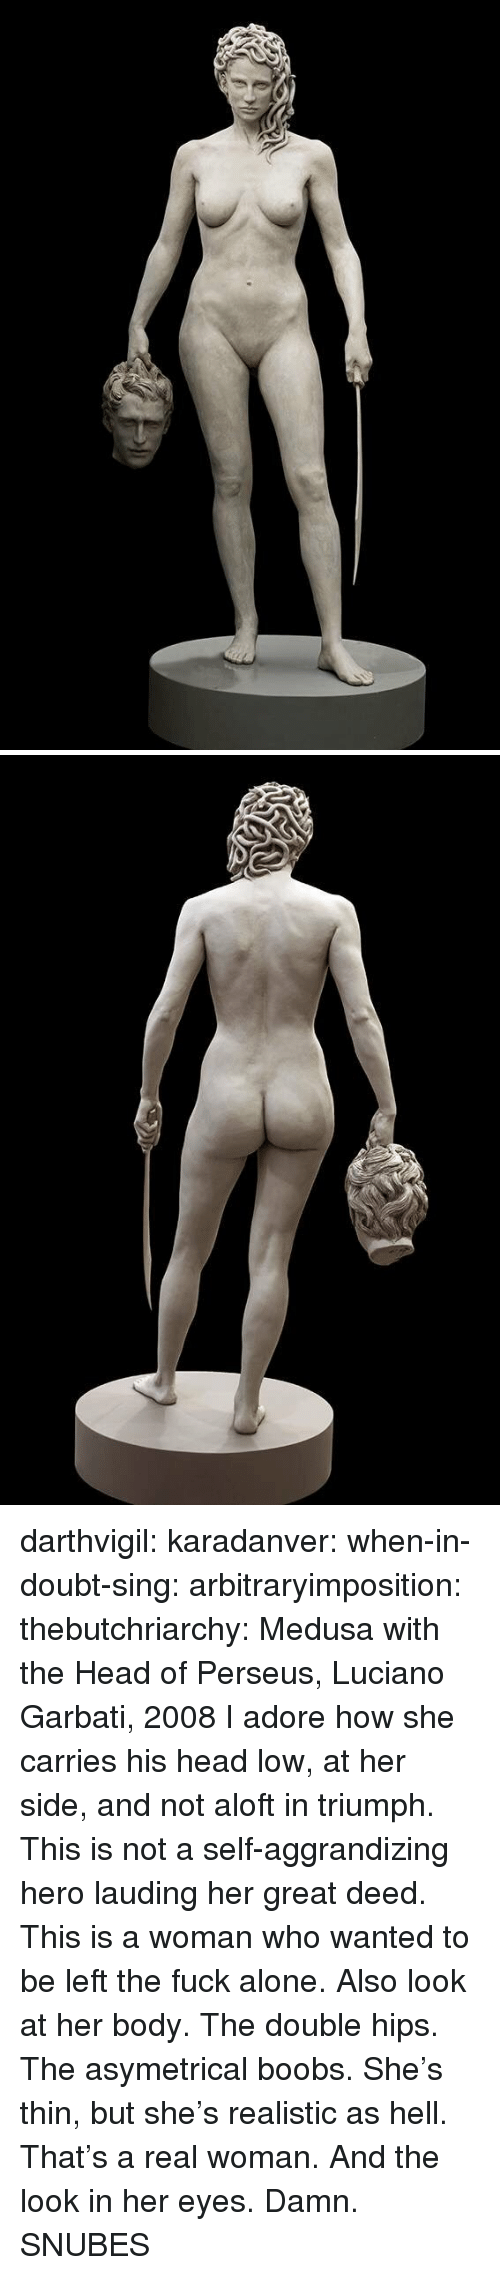 perseus: darthvigil: karadanver:  when-in-doubt-sing:  arbitraryimposition:  thebutchriarchy: Medusa with the Head of Perseus, Luciano Garbati, 2008 I adore how she carries his head low, at her side, and not aloft in triumph.  This is not a self-aggrandizing hero lauding her great deed. This is a woman who wanted to be left the fuck alone.   Also look at her body. The double hips. The asymetrical boobs. She's thin, but she's realistic as hell. That's a real woman.  And the look in her eyes. Damn.      SNUBES